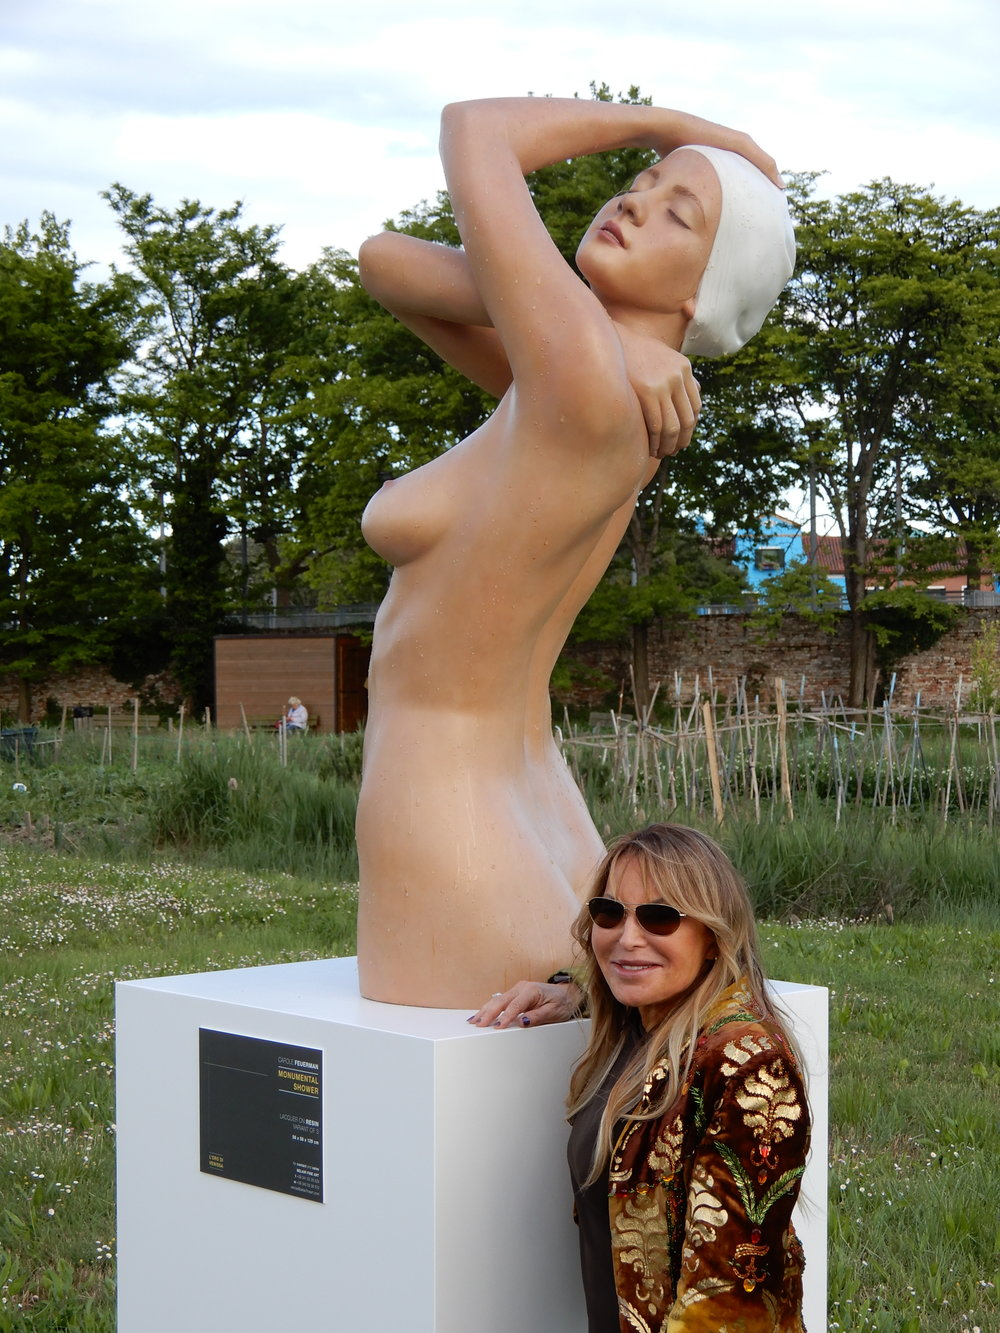 Carole Feuerman with Monumental Shower, 2009, Resin, 51 x 21 x 23 inches, Bruno, Italy